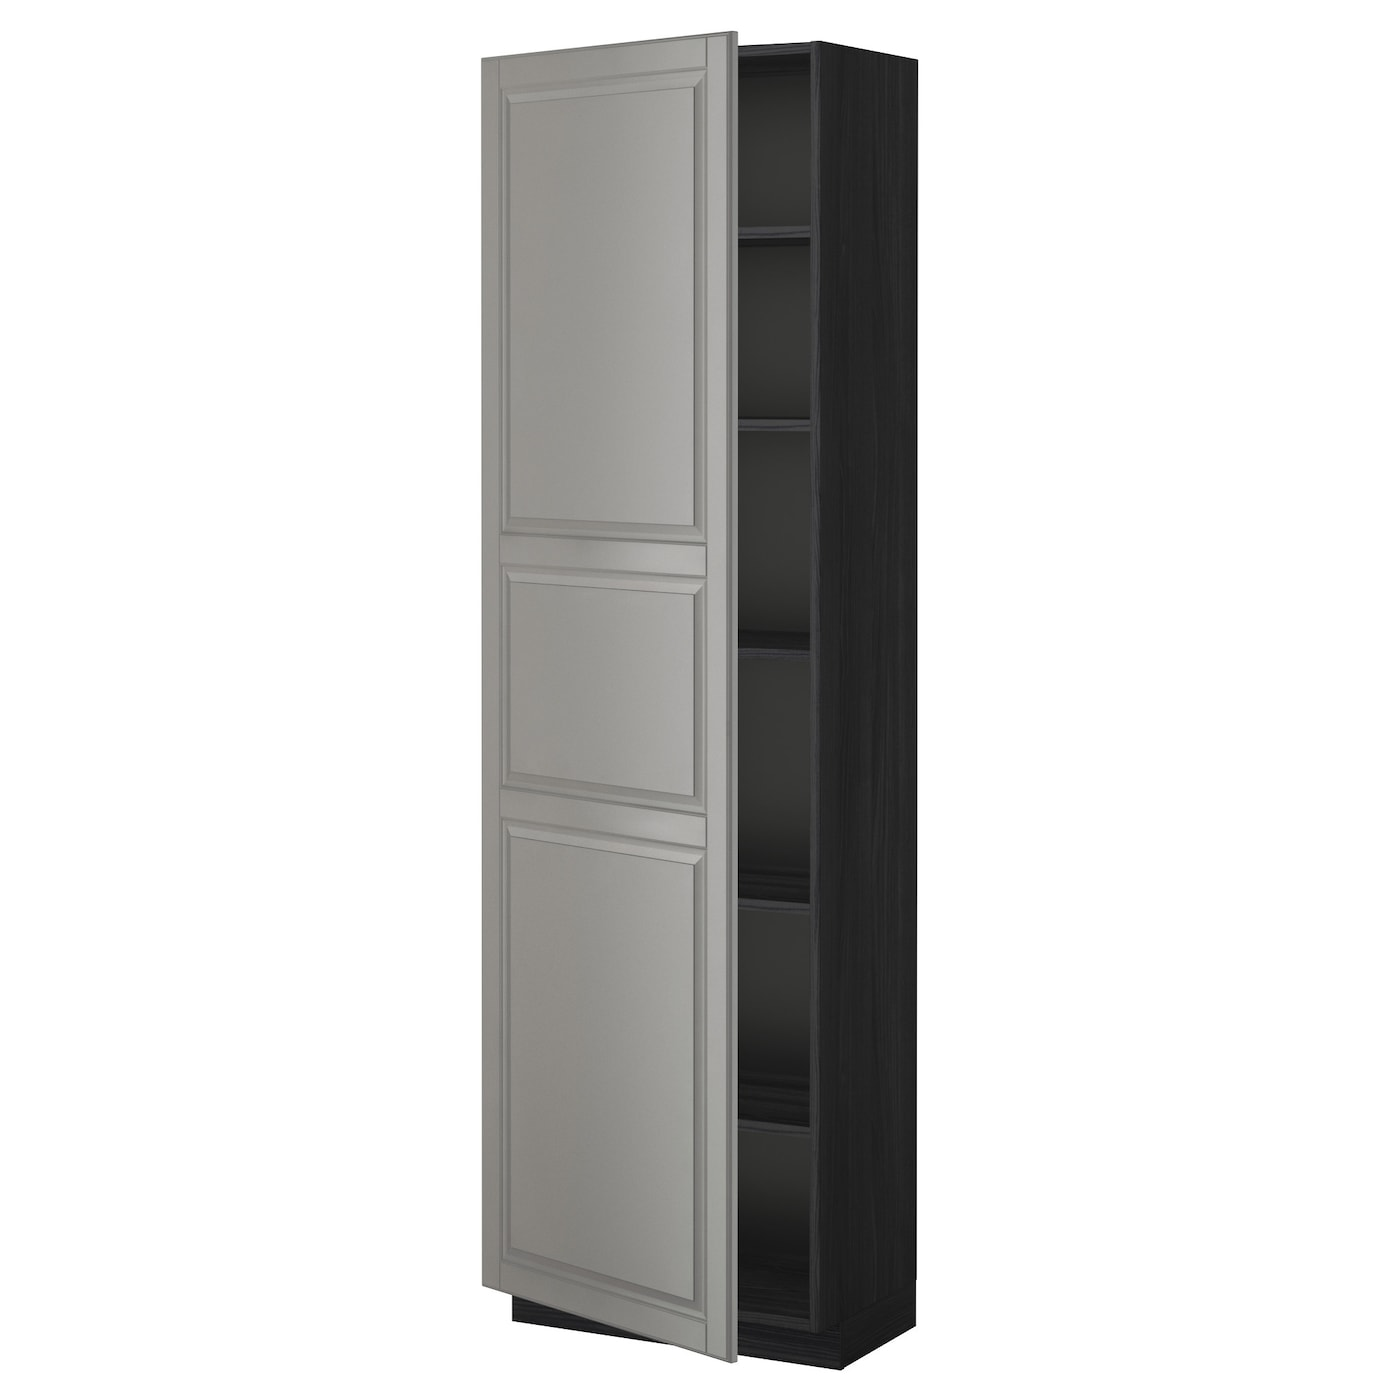 metod armoire avec tablettes noir bodbyn gris 60 x 37 x 200 cm ikea. Black Bedroom Furniture Sets. Home Design Ideas